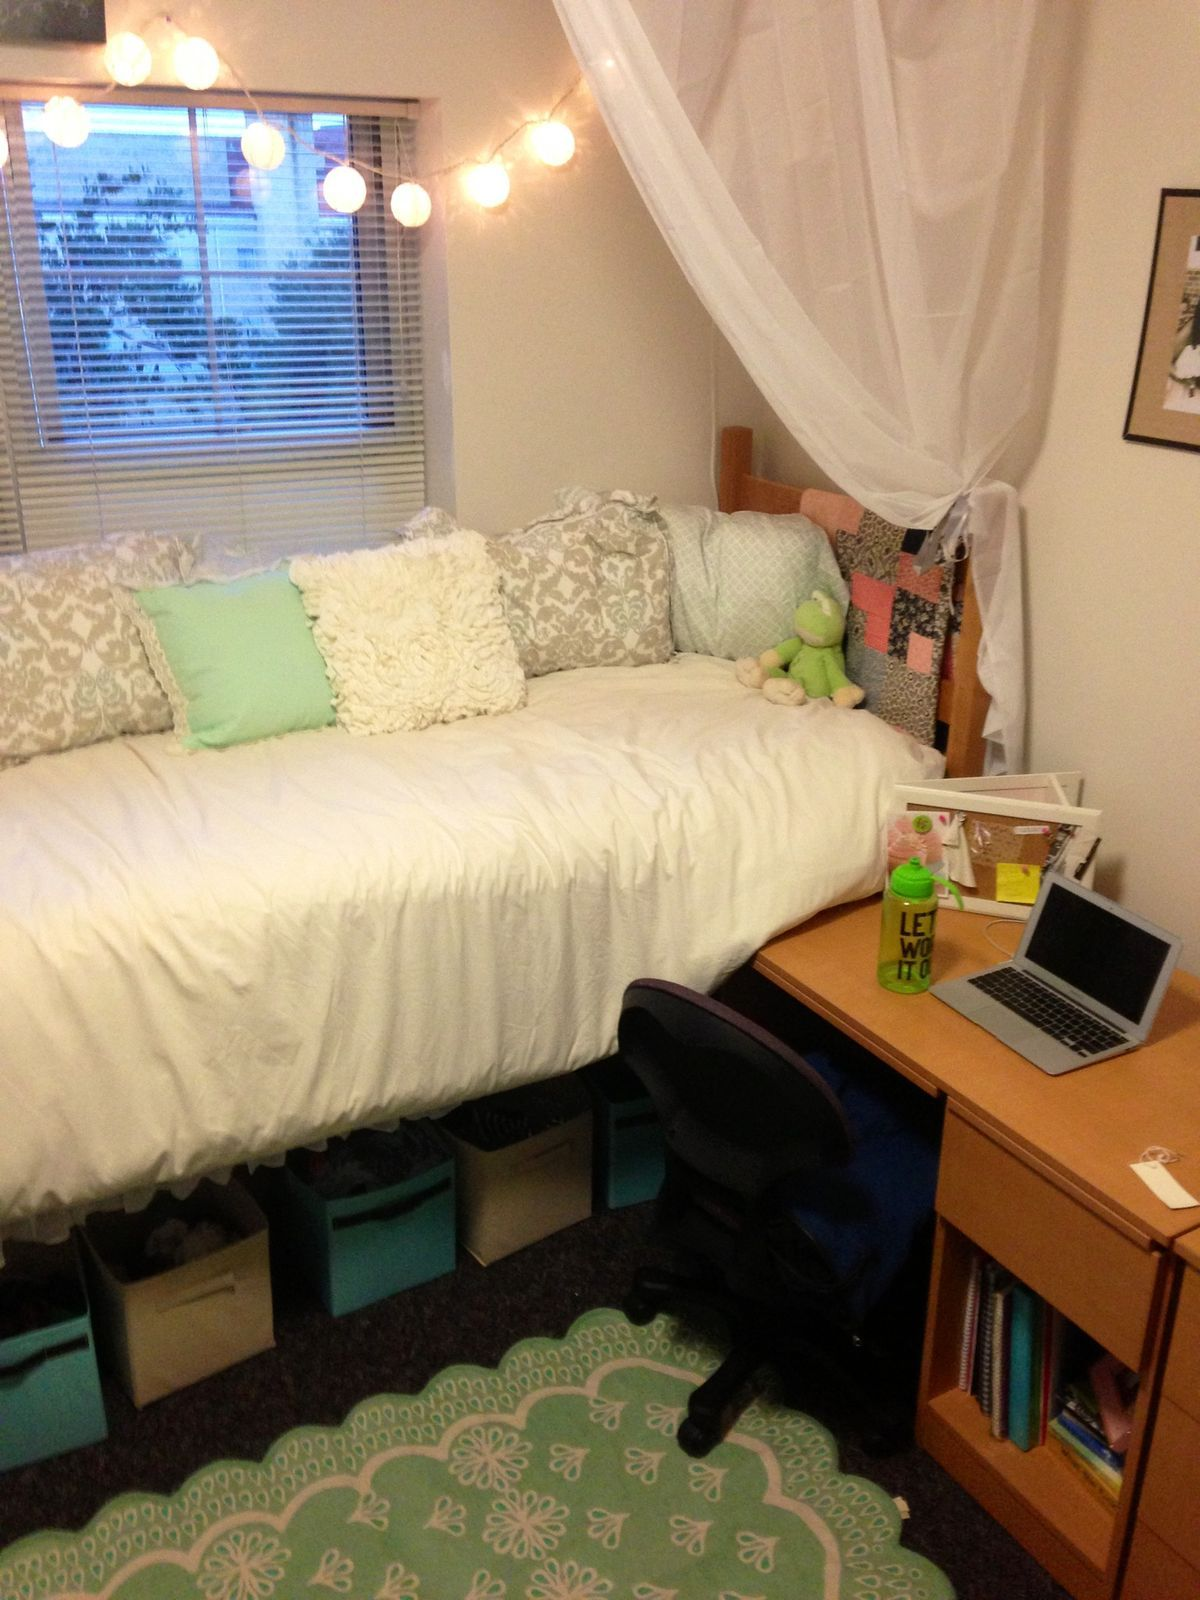 Get The Coziest Bed Ever Dorm Room Decor